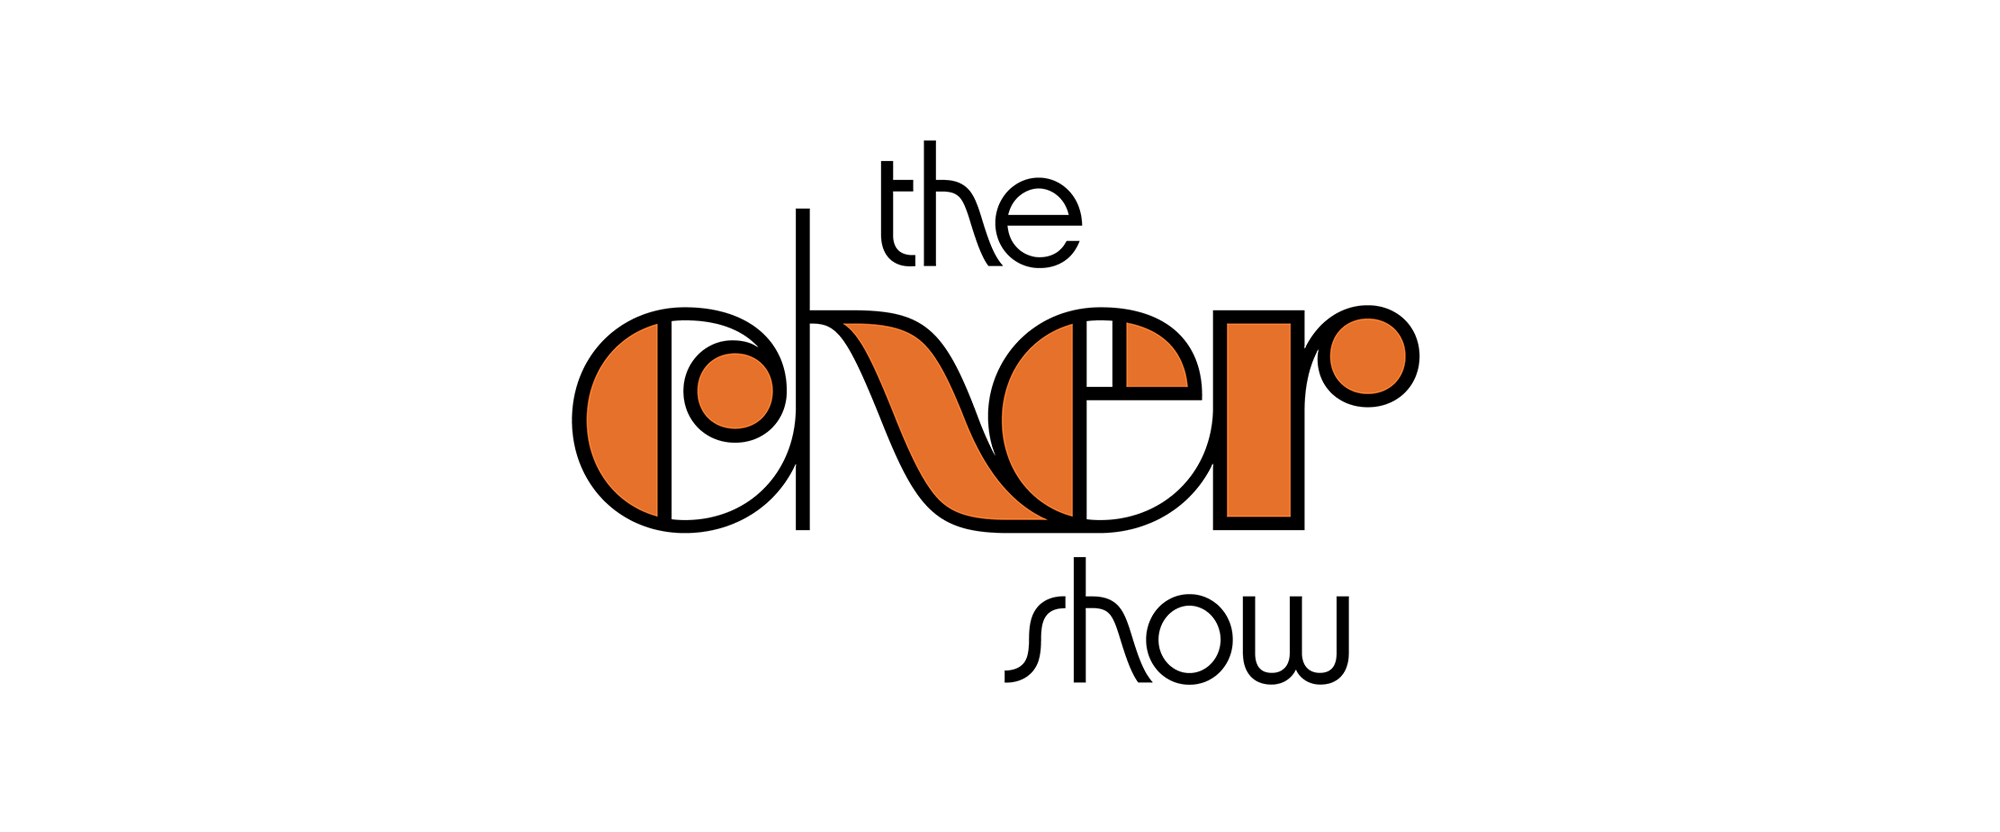 New Logo for The Cher Show by House Industries